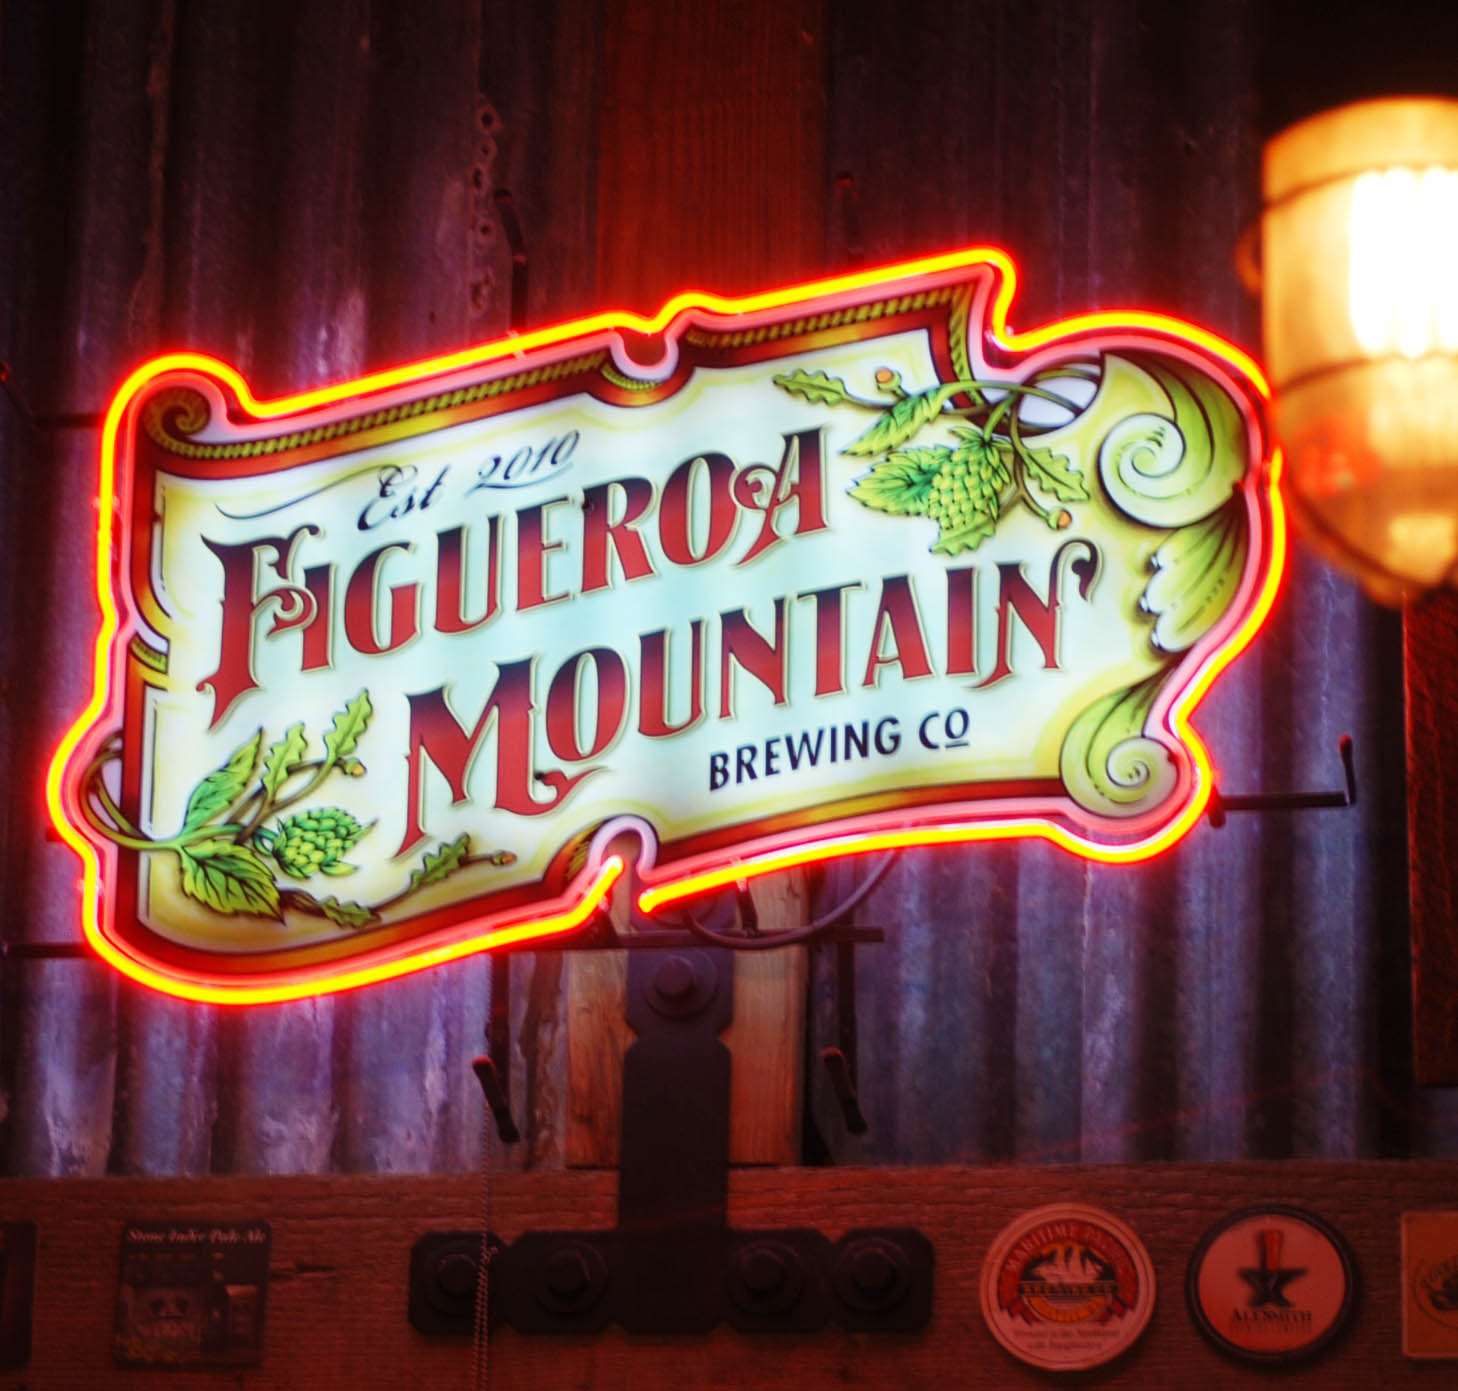 179. Figueroa Mountain Brewing Company, Buelton CA 2013